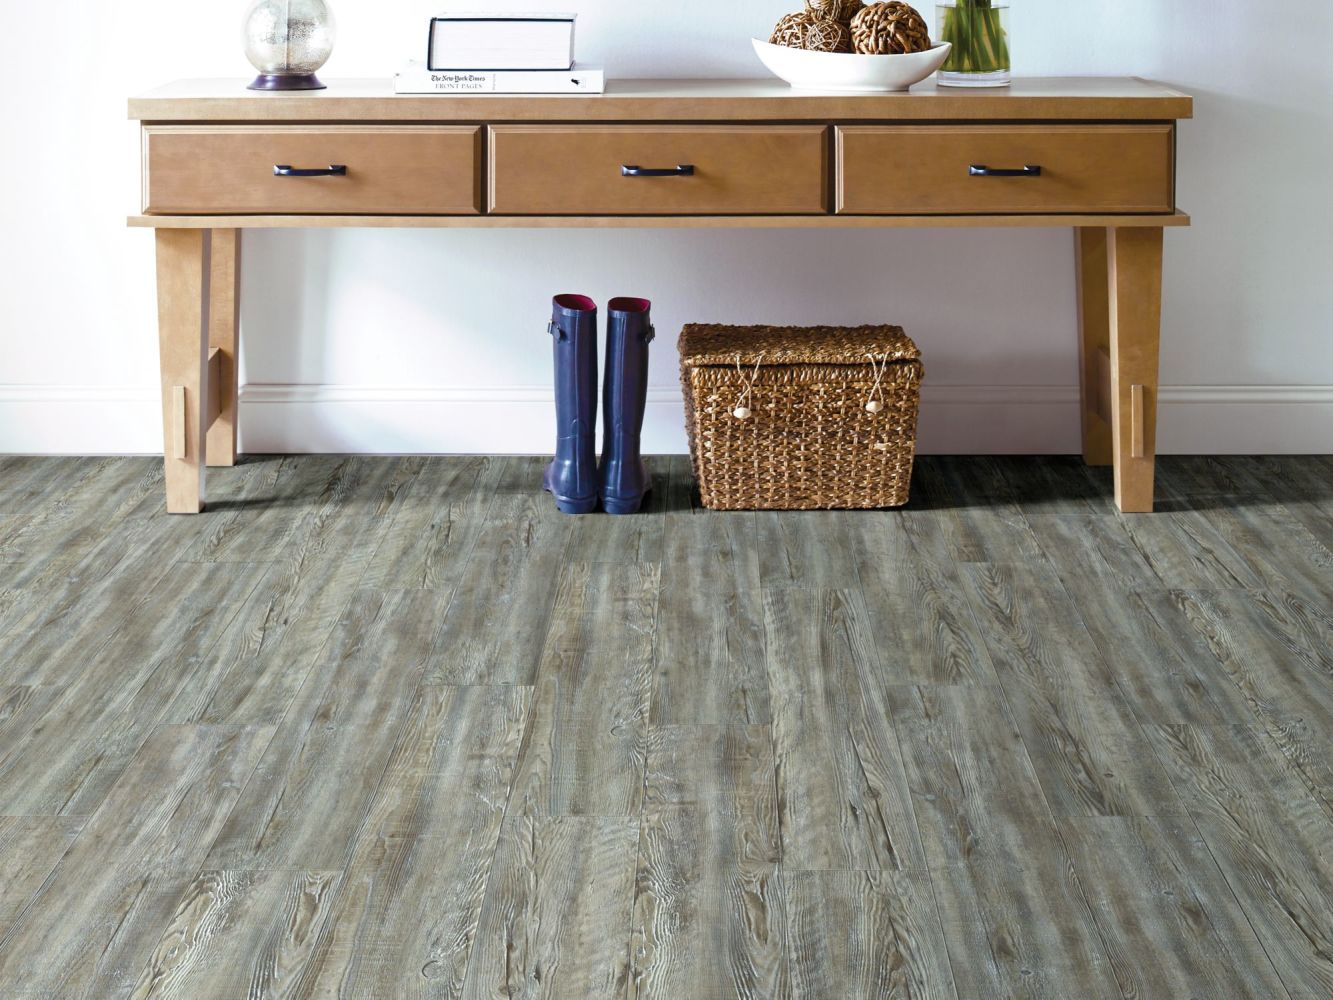 Shaw Floors Resilient Residential Impact Plus Weathered Barnboard 00400_2031V